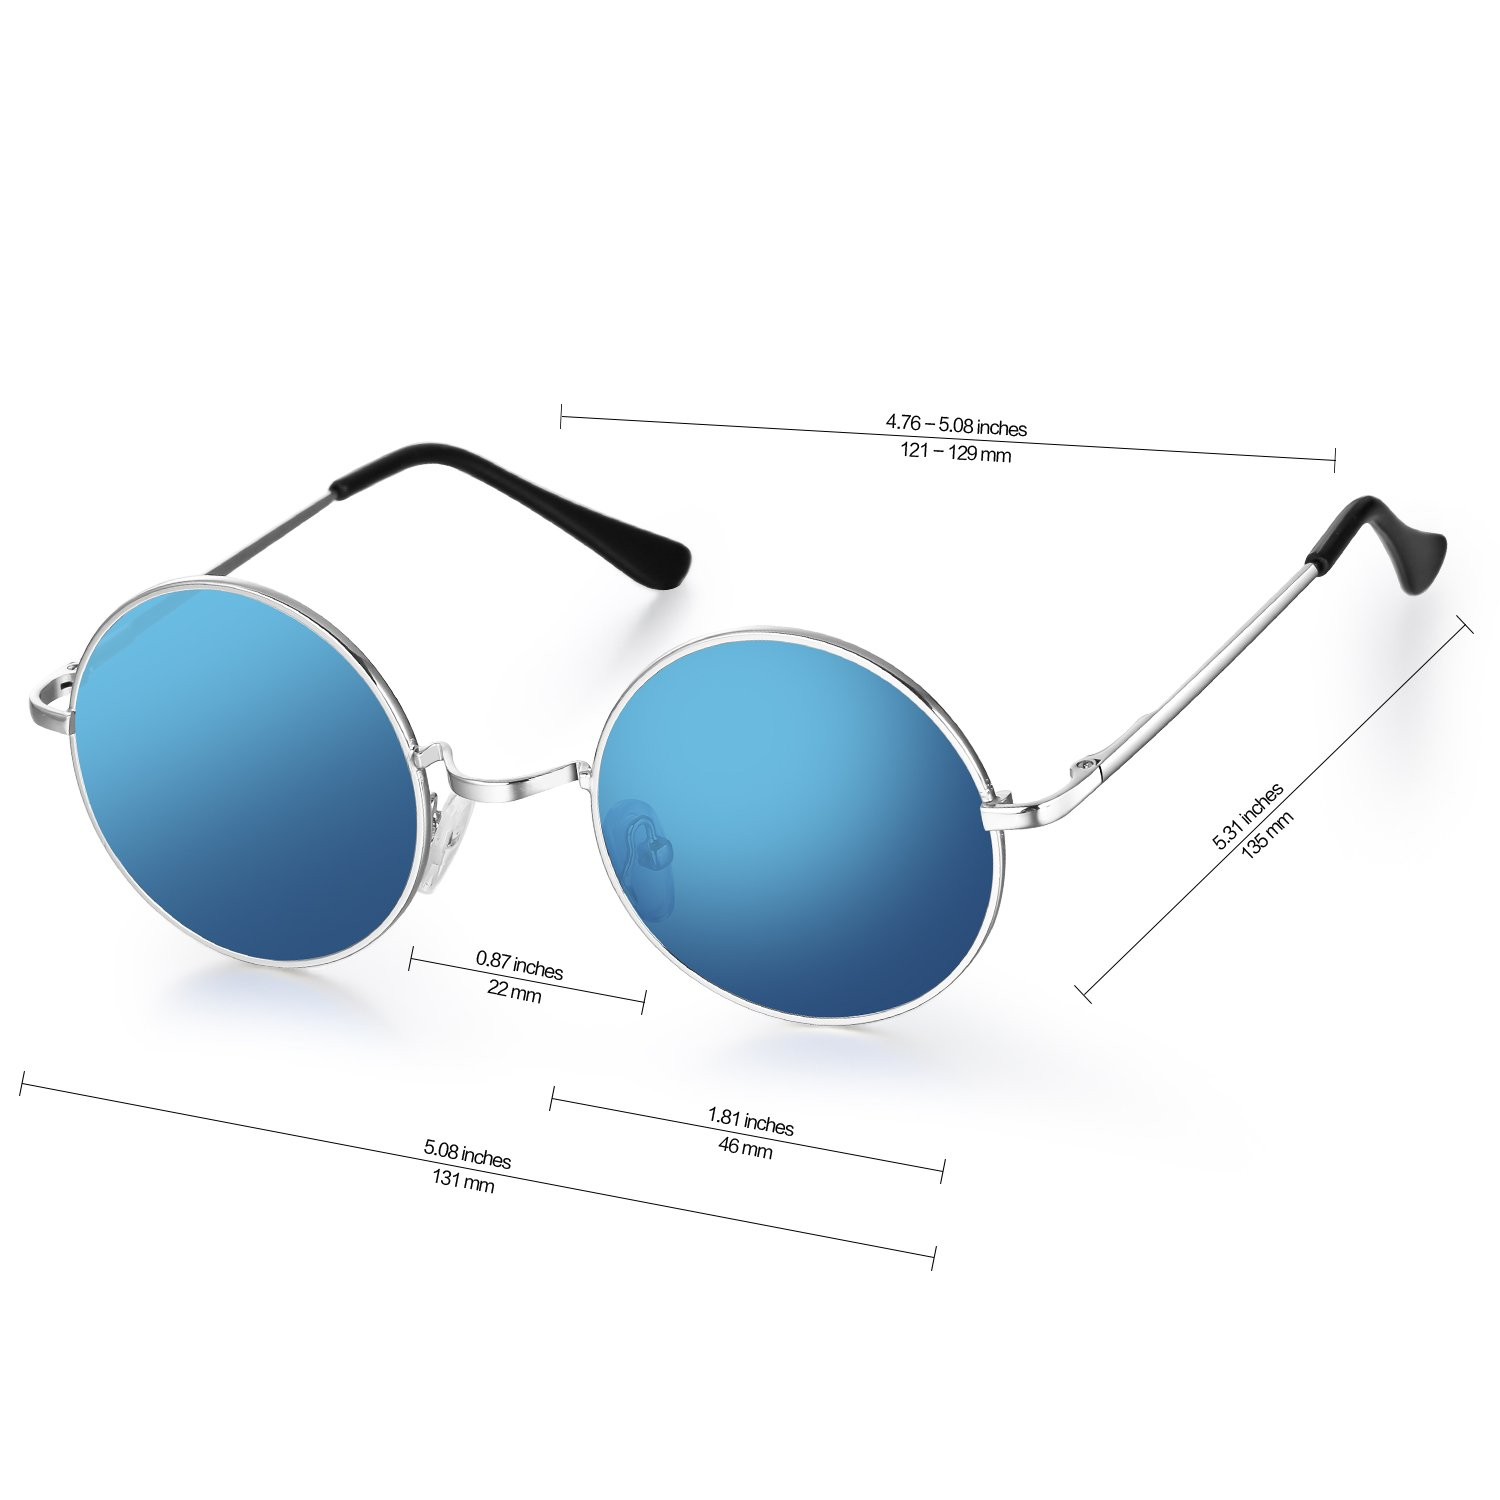 Menton Ezil John Lennon Small Round Sunglasses Retro Vintage Style Hippy Glasses For Men and Women with Circle Polarized Lens Metal Frame Spring Hinge Lifetime Breakage Guarantee